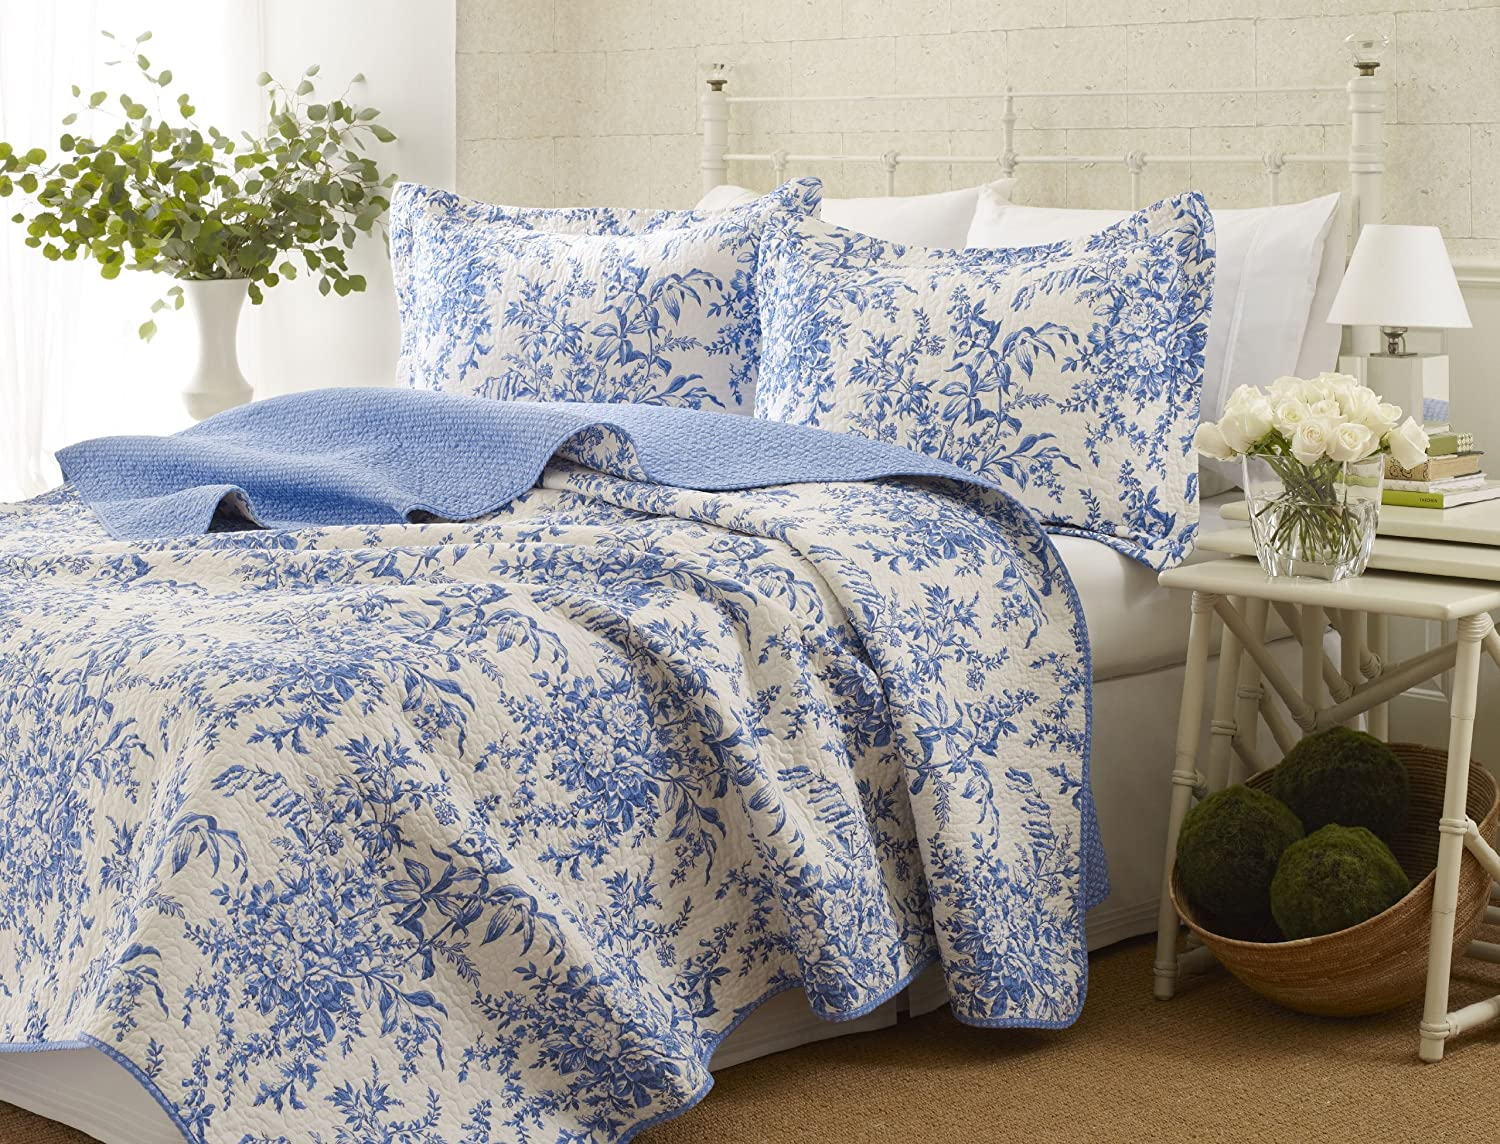 Bedding Liquidation Sale